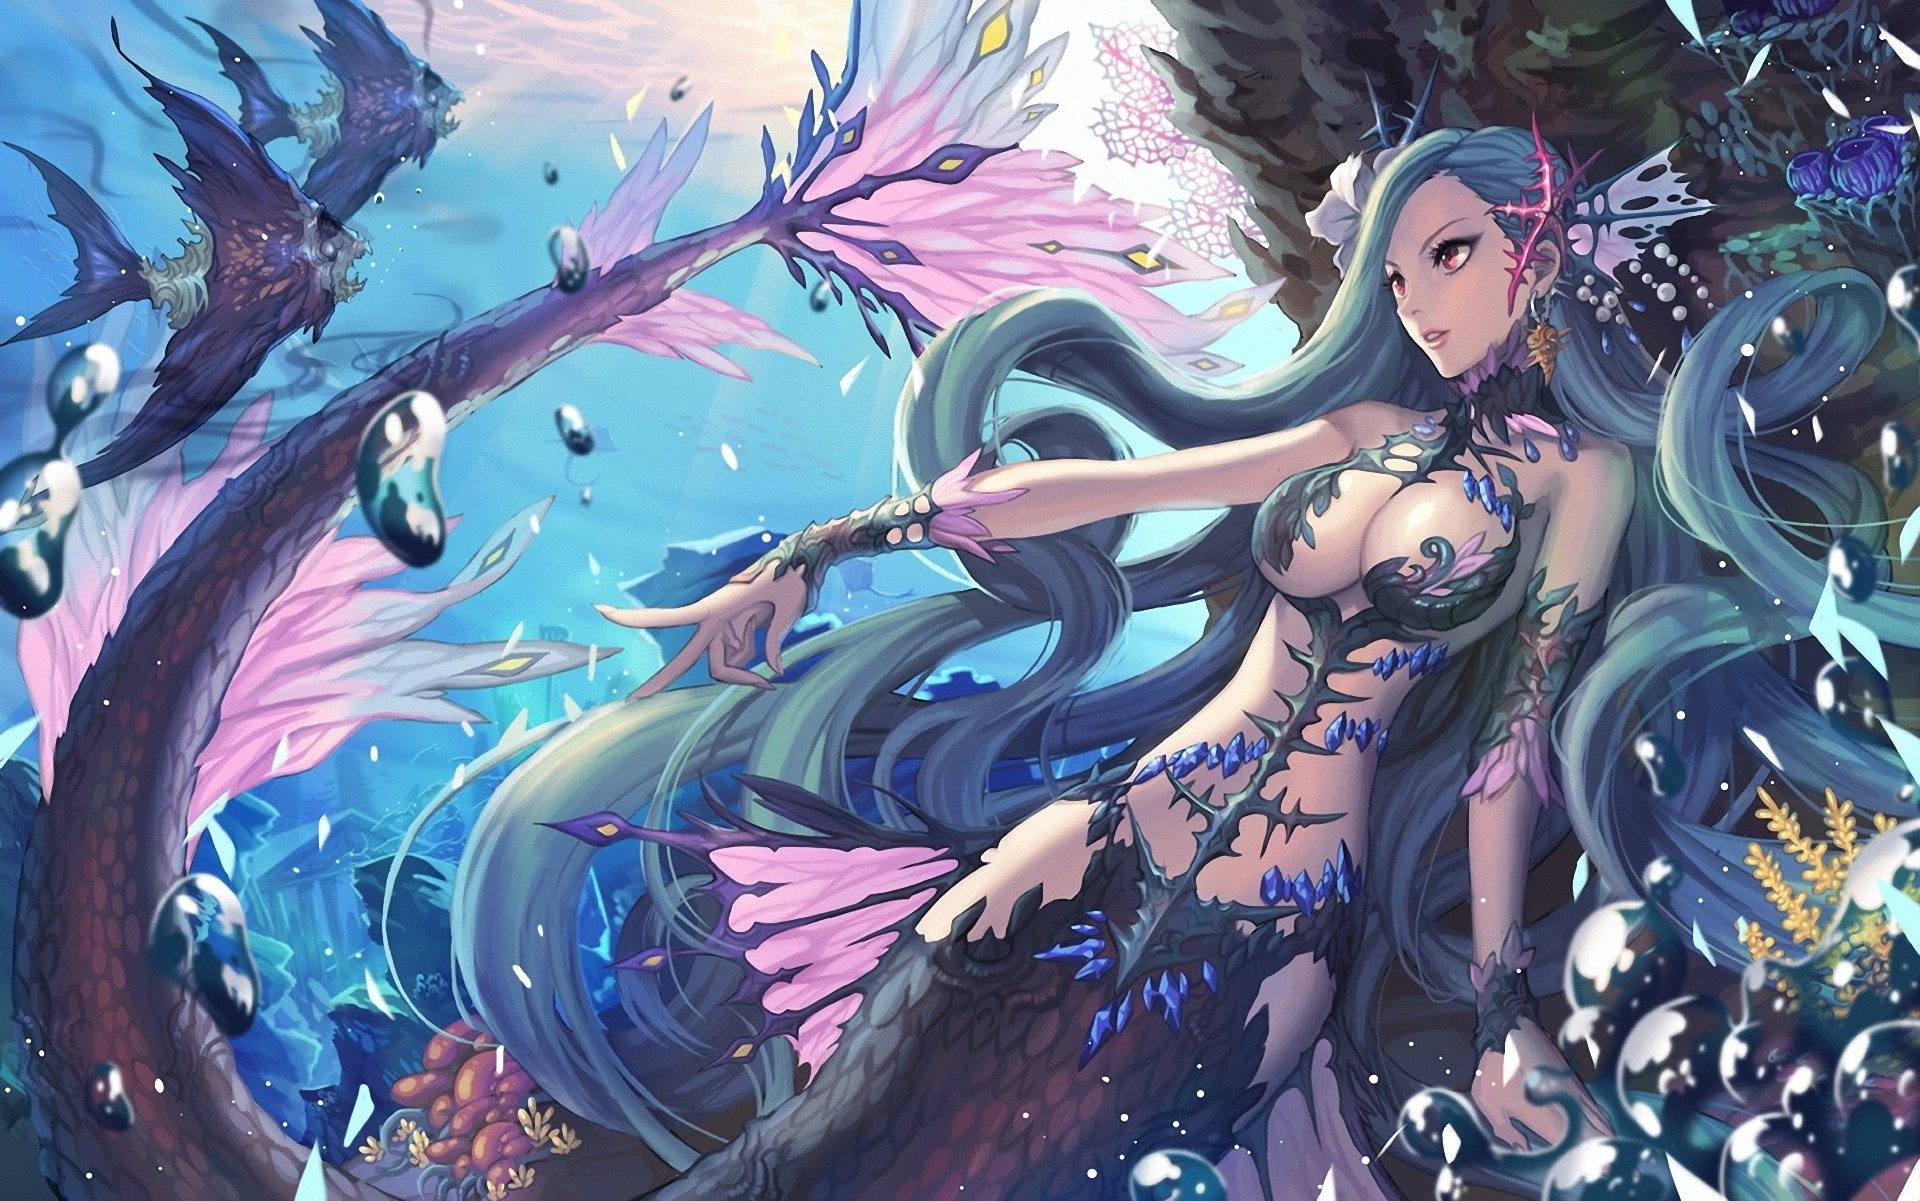 Beneath the depths – Anime Girls Artbooks